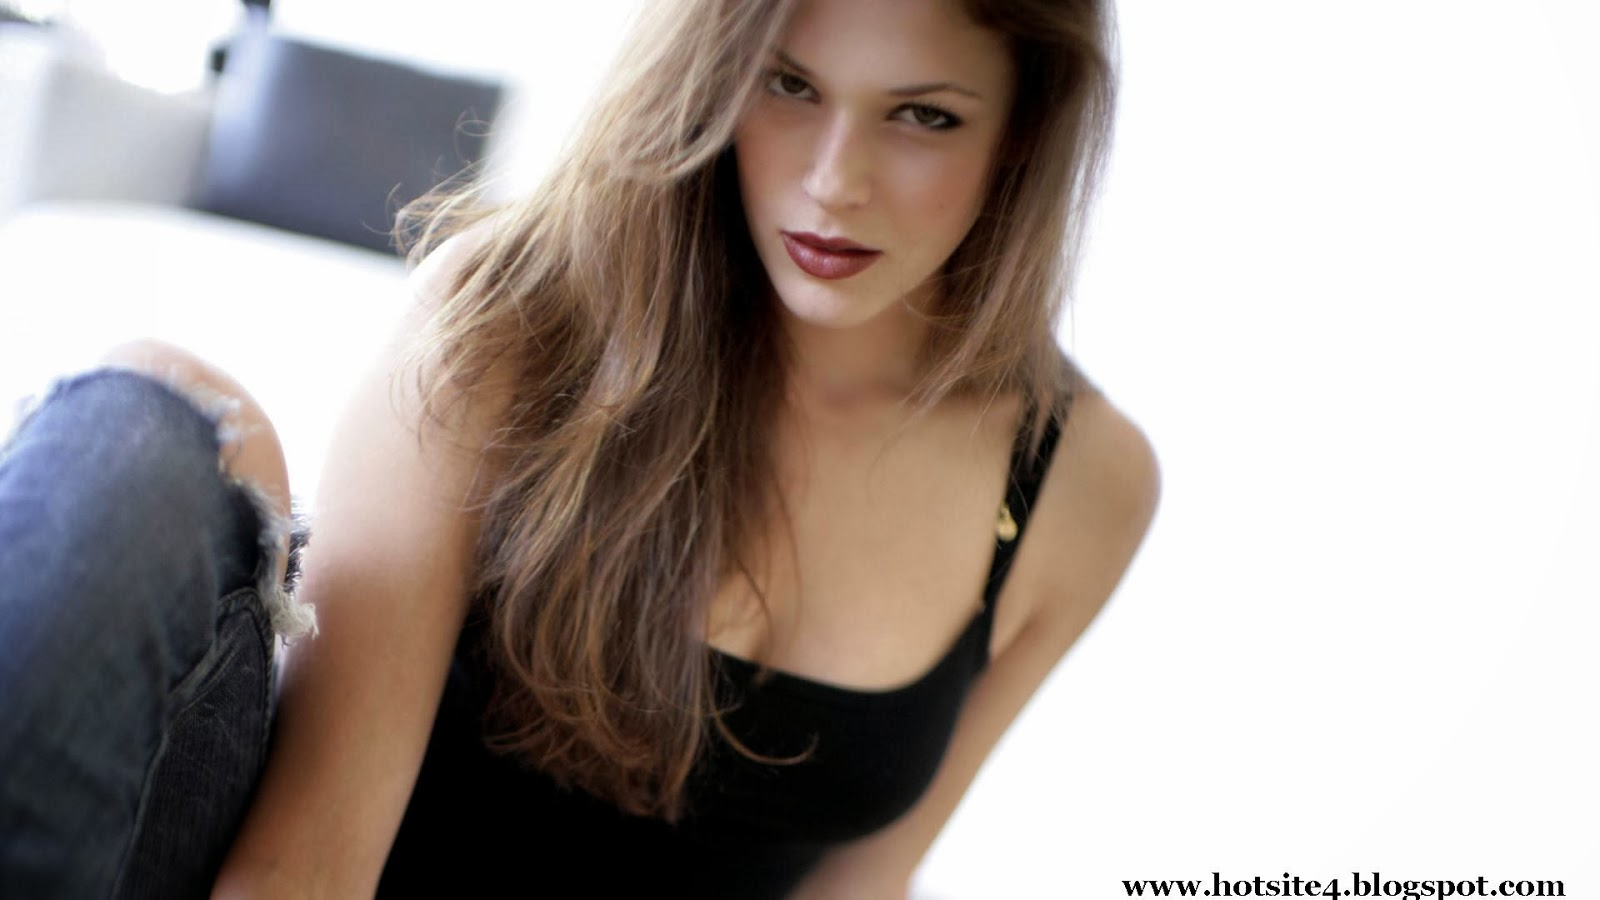 Amanda righetti north shore - 2 part 6